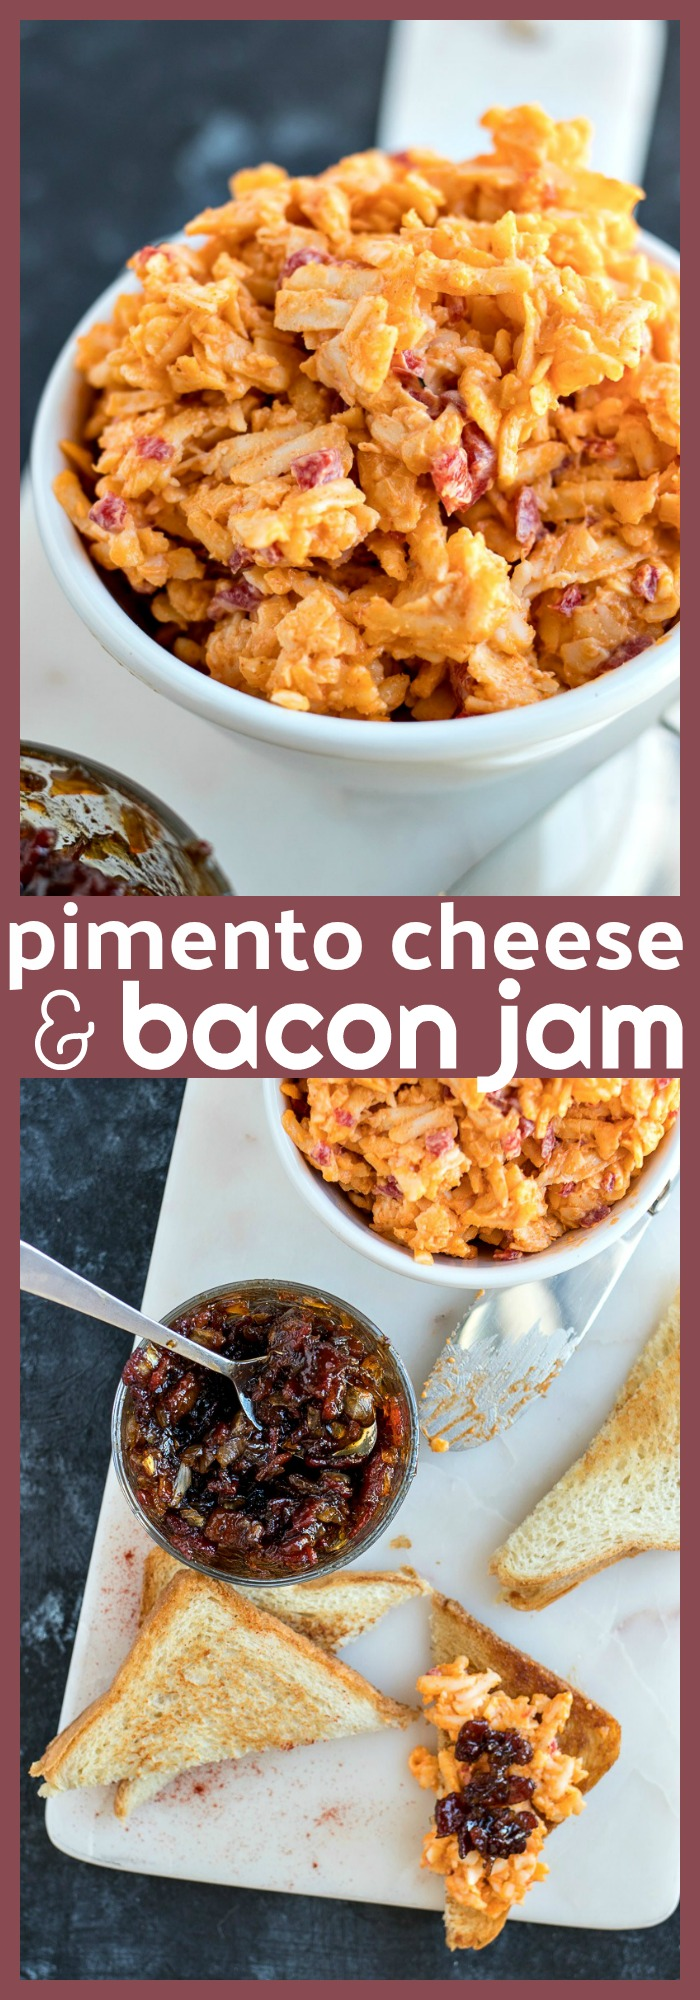 Pimento Cheese with Bacon Jam photo collage